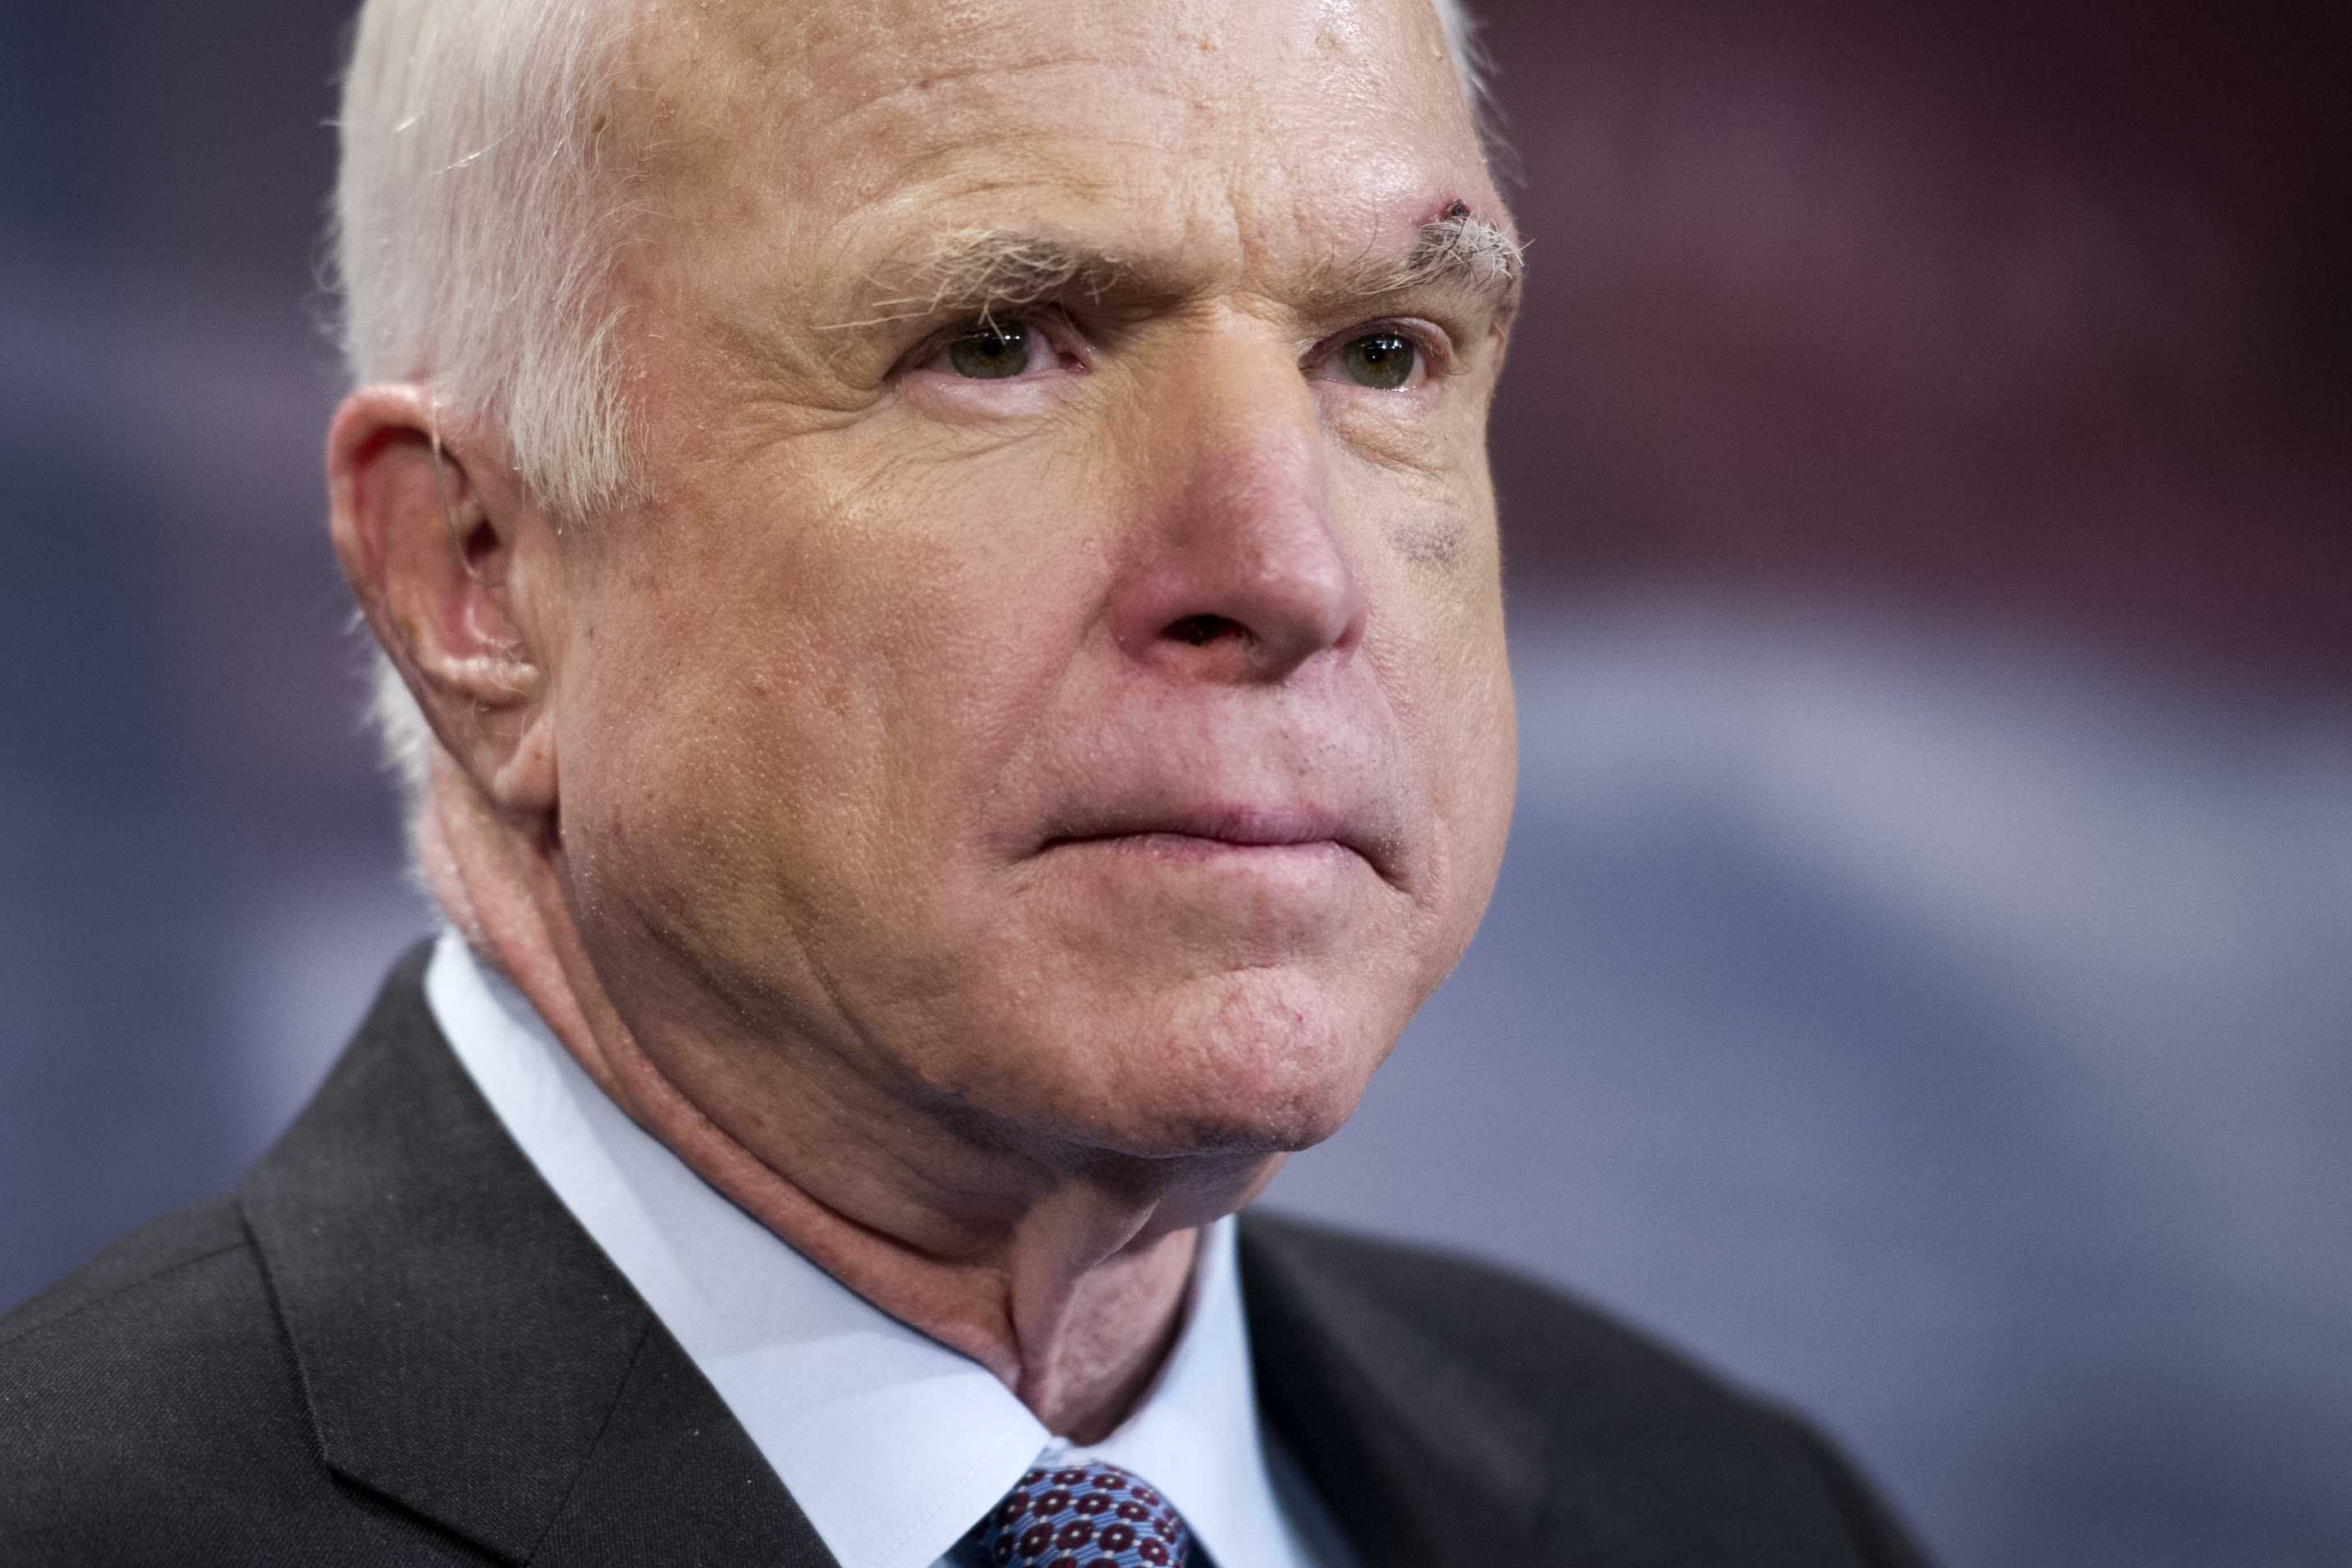 John McCain undergoes surgery for intestinal infection